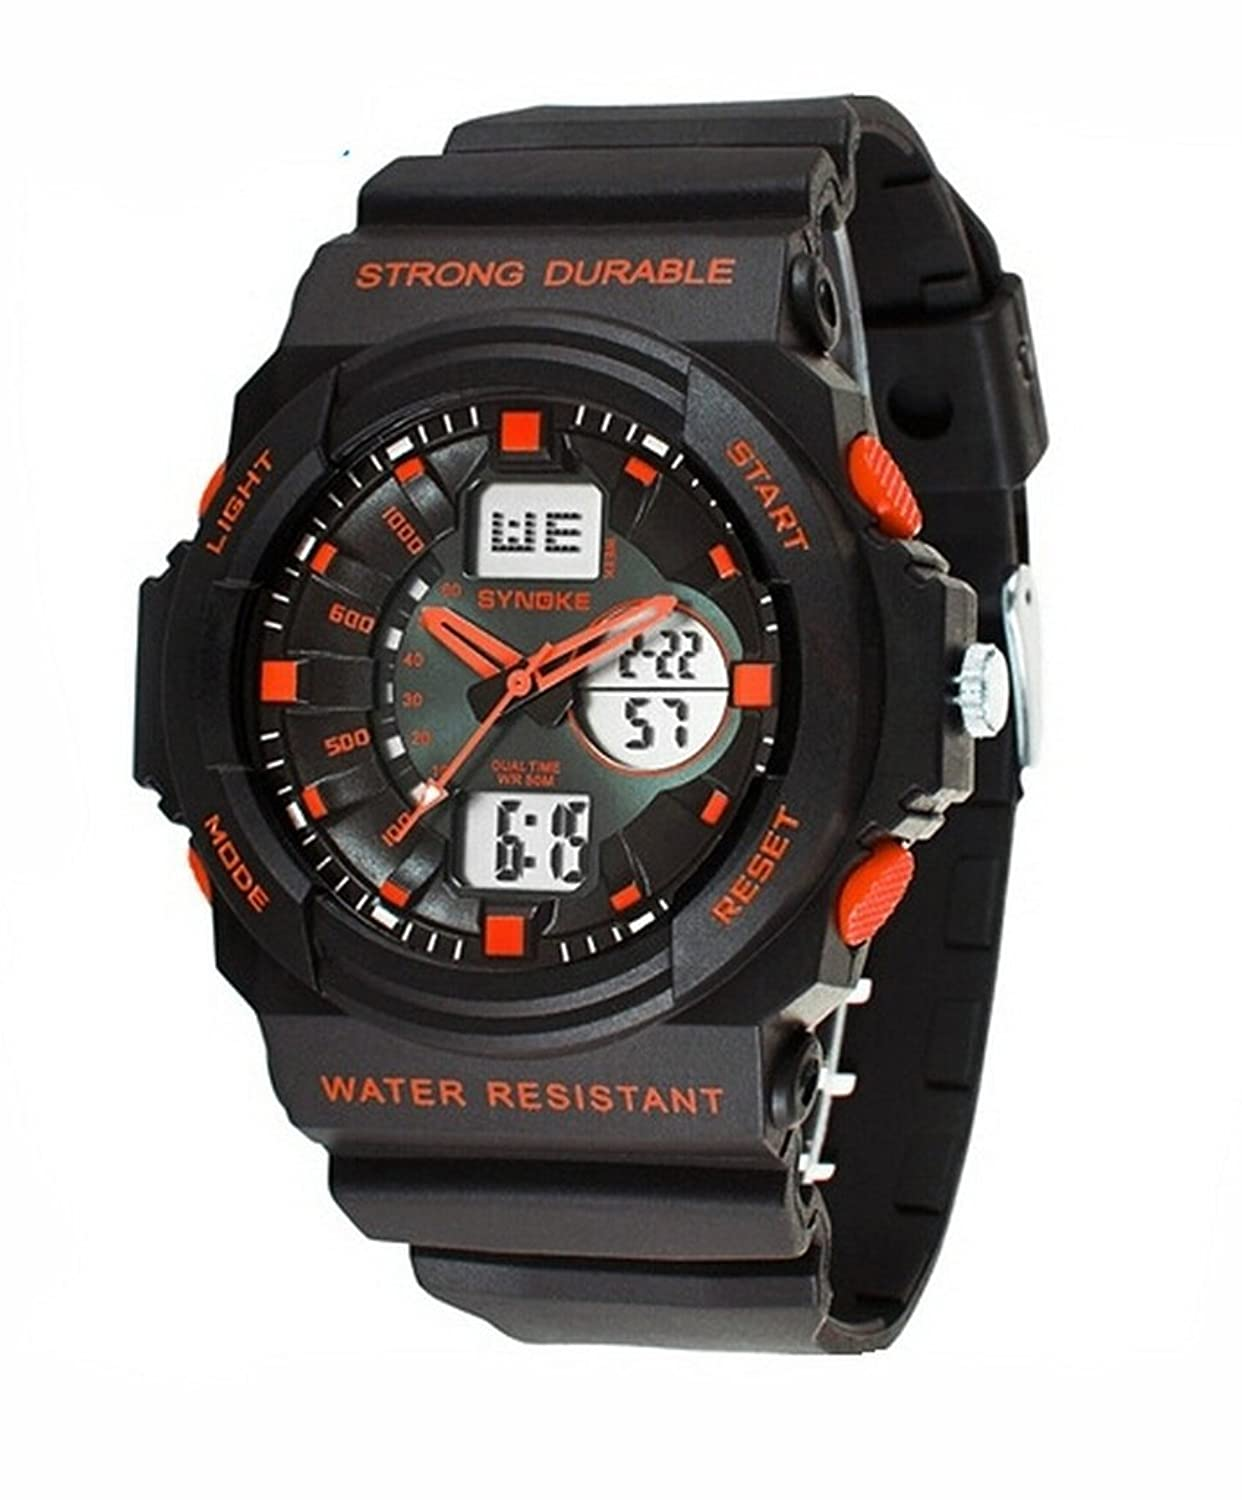 Cool Waterproof Digital Analog Sports Watches For Age 7-15 Years old Boys Girls Youth Black+Orange